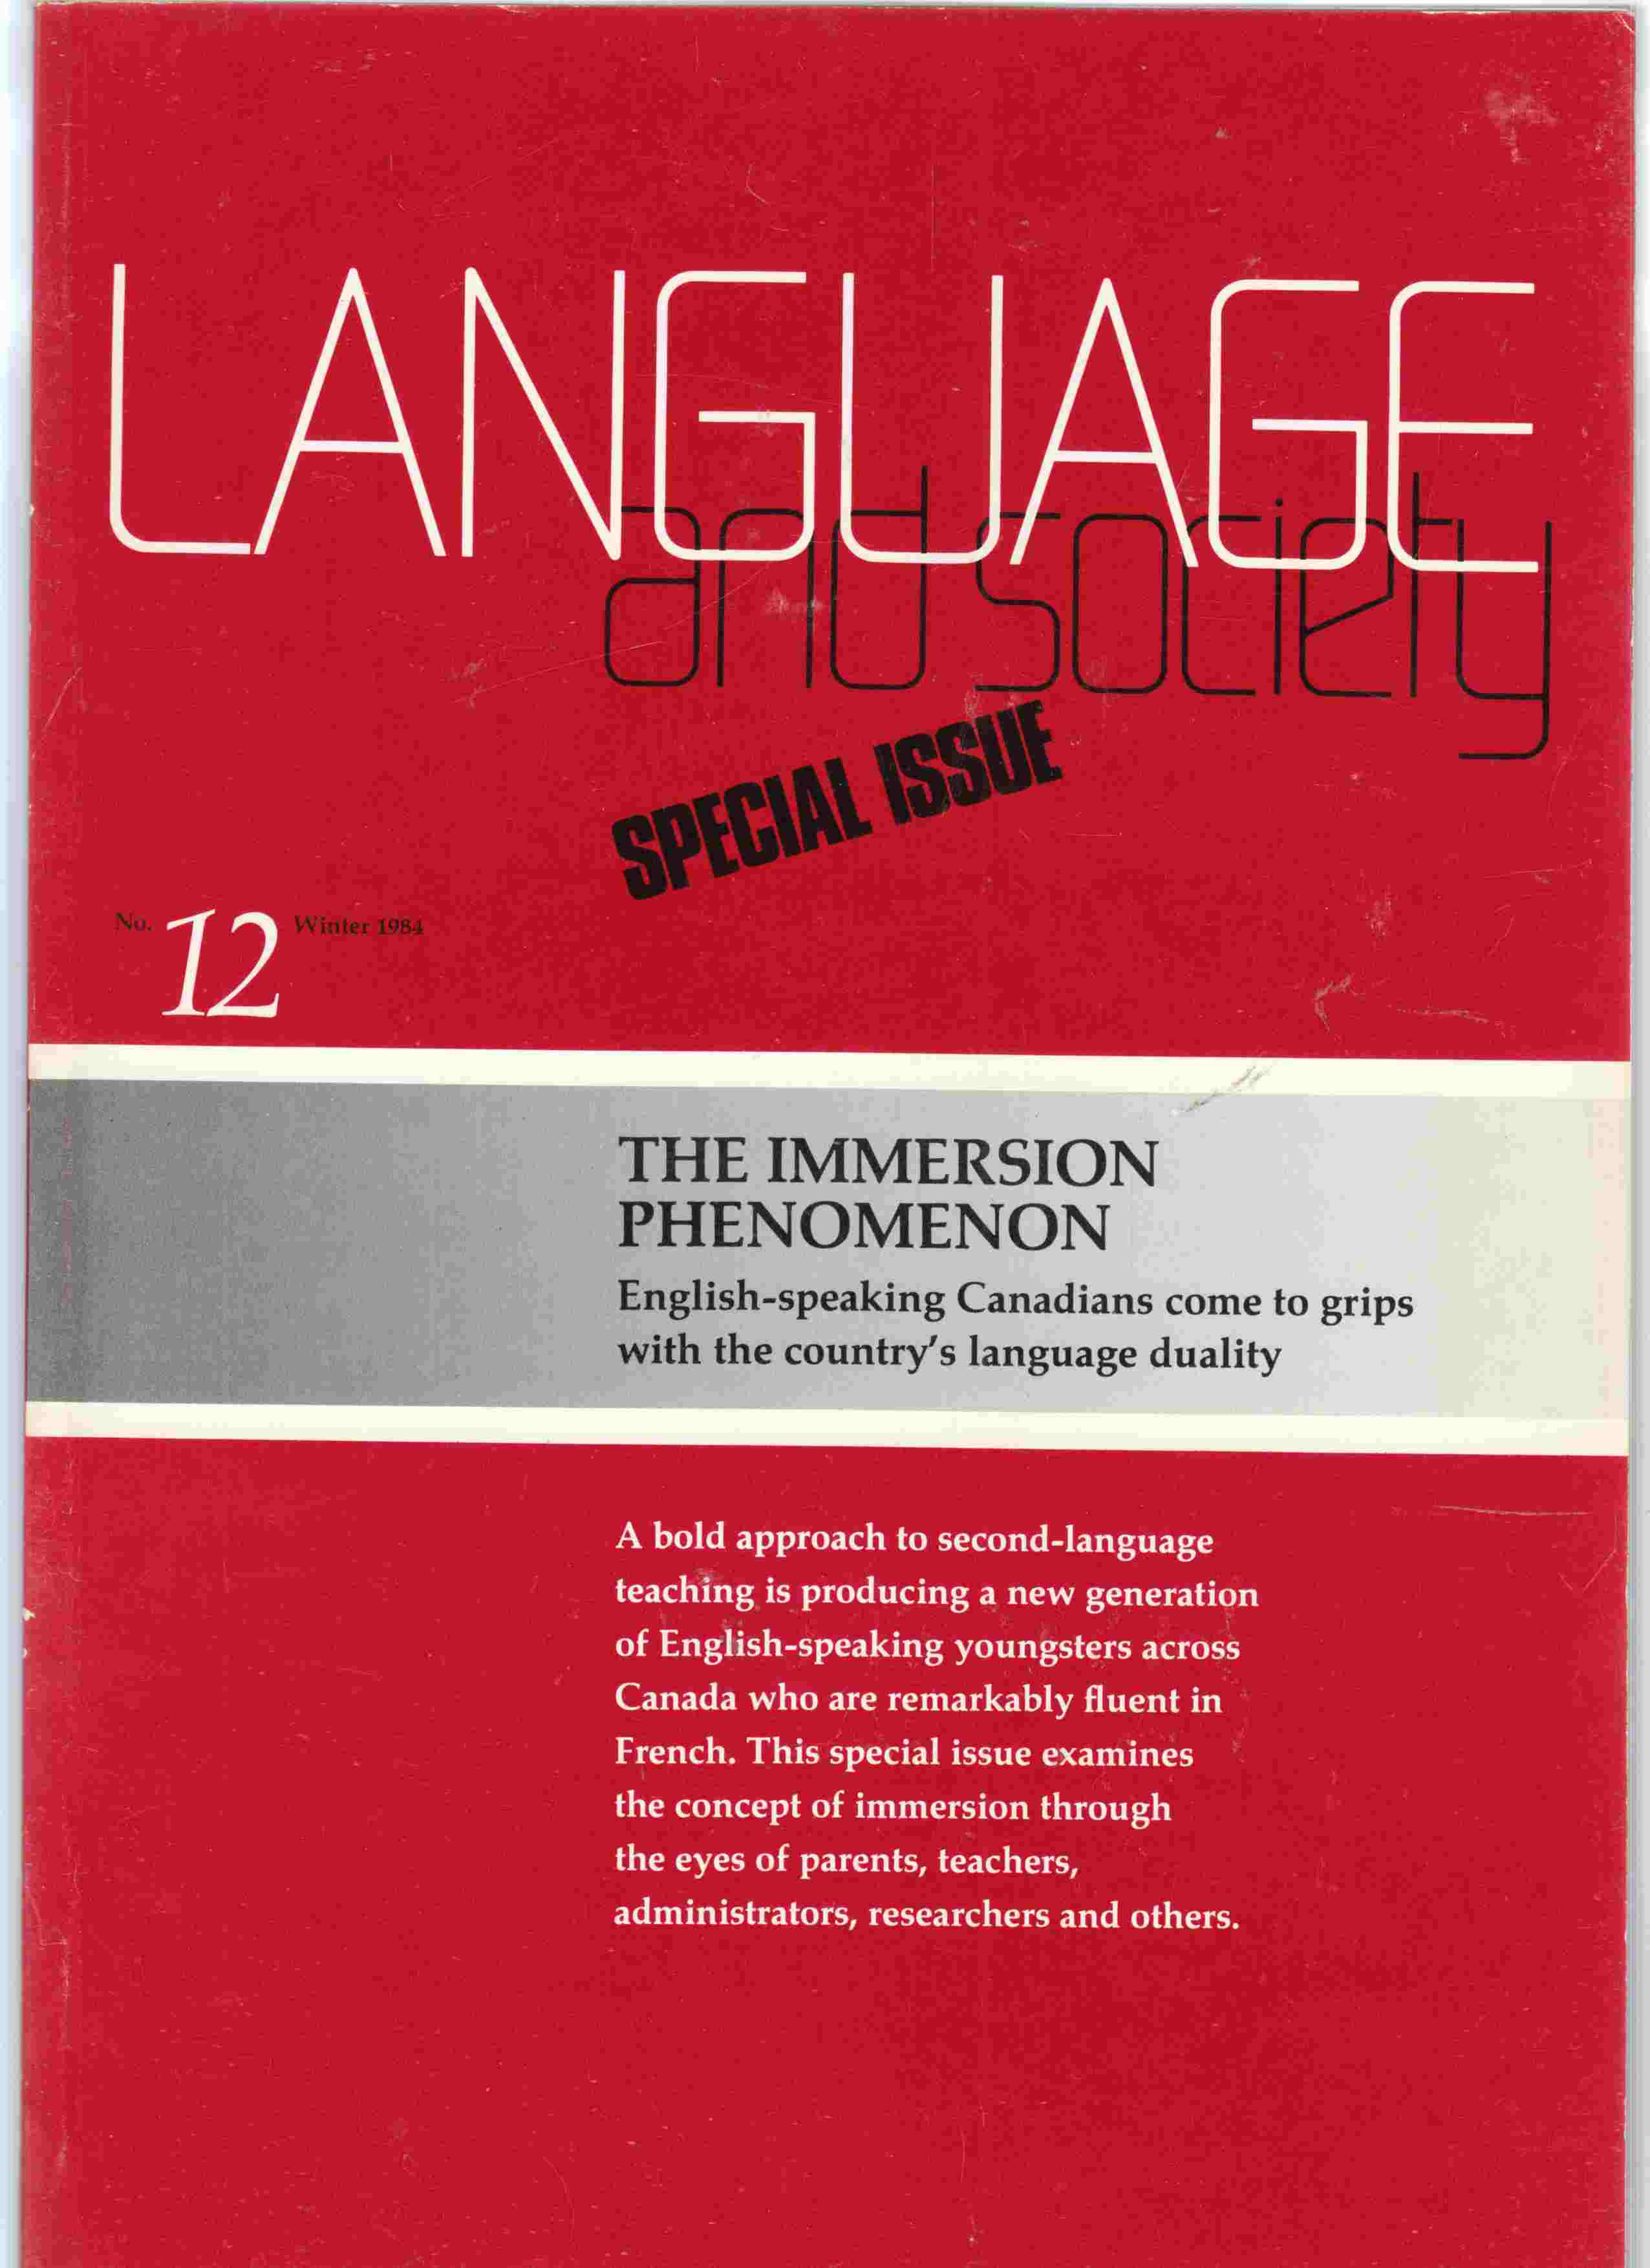 Image for Language and Society Special Issue No. 12 Winter 1994 the Immersion Phenomenon Langue Et Societe Numero Special No. 12 Hiver 1984 L'Enseignement Immersif